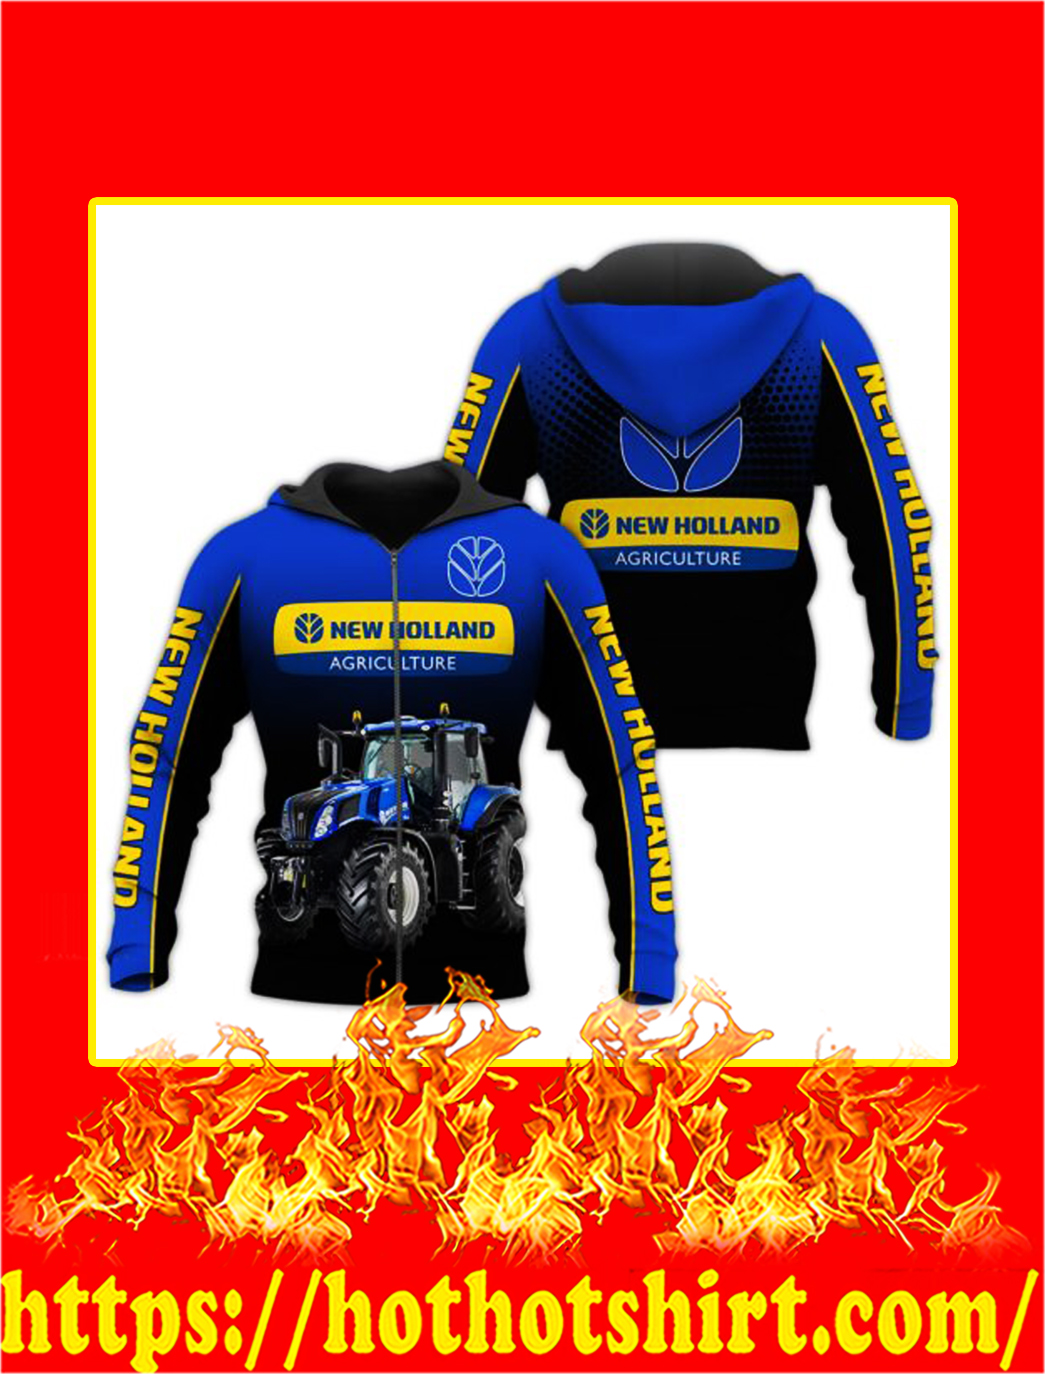 Tractor New Holland Agriculture 3D All Over Printed zip hoodie